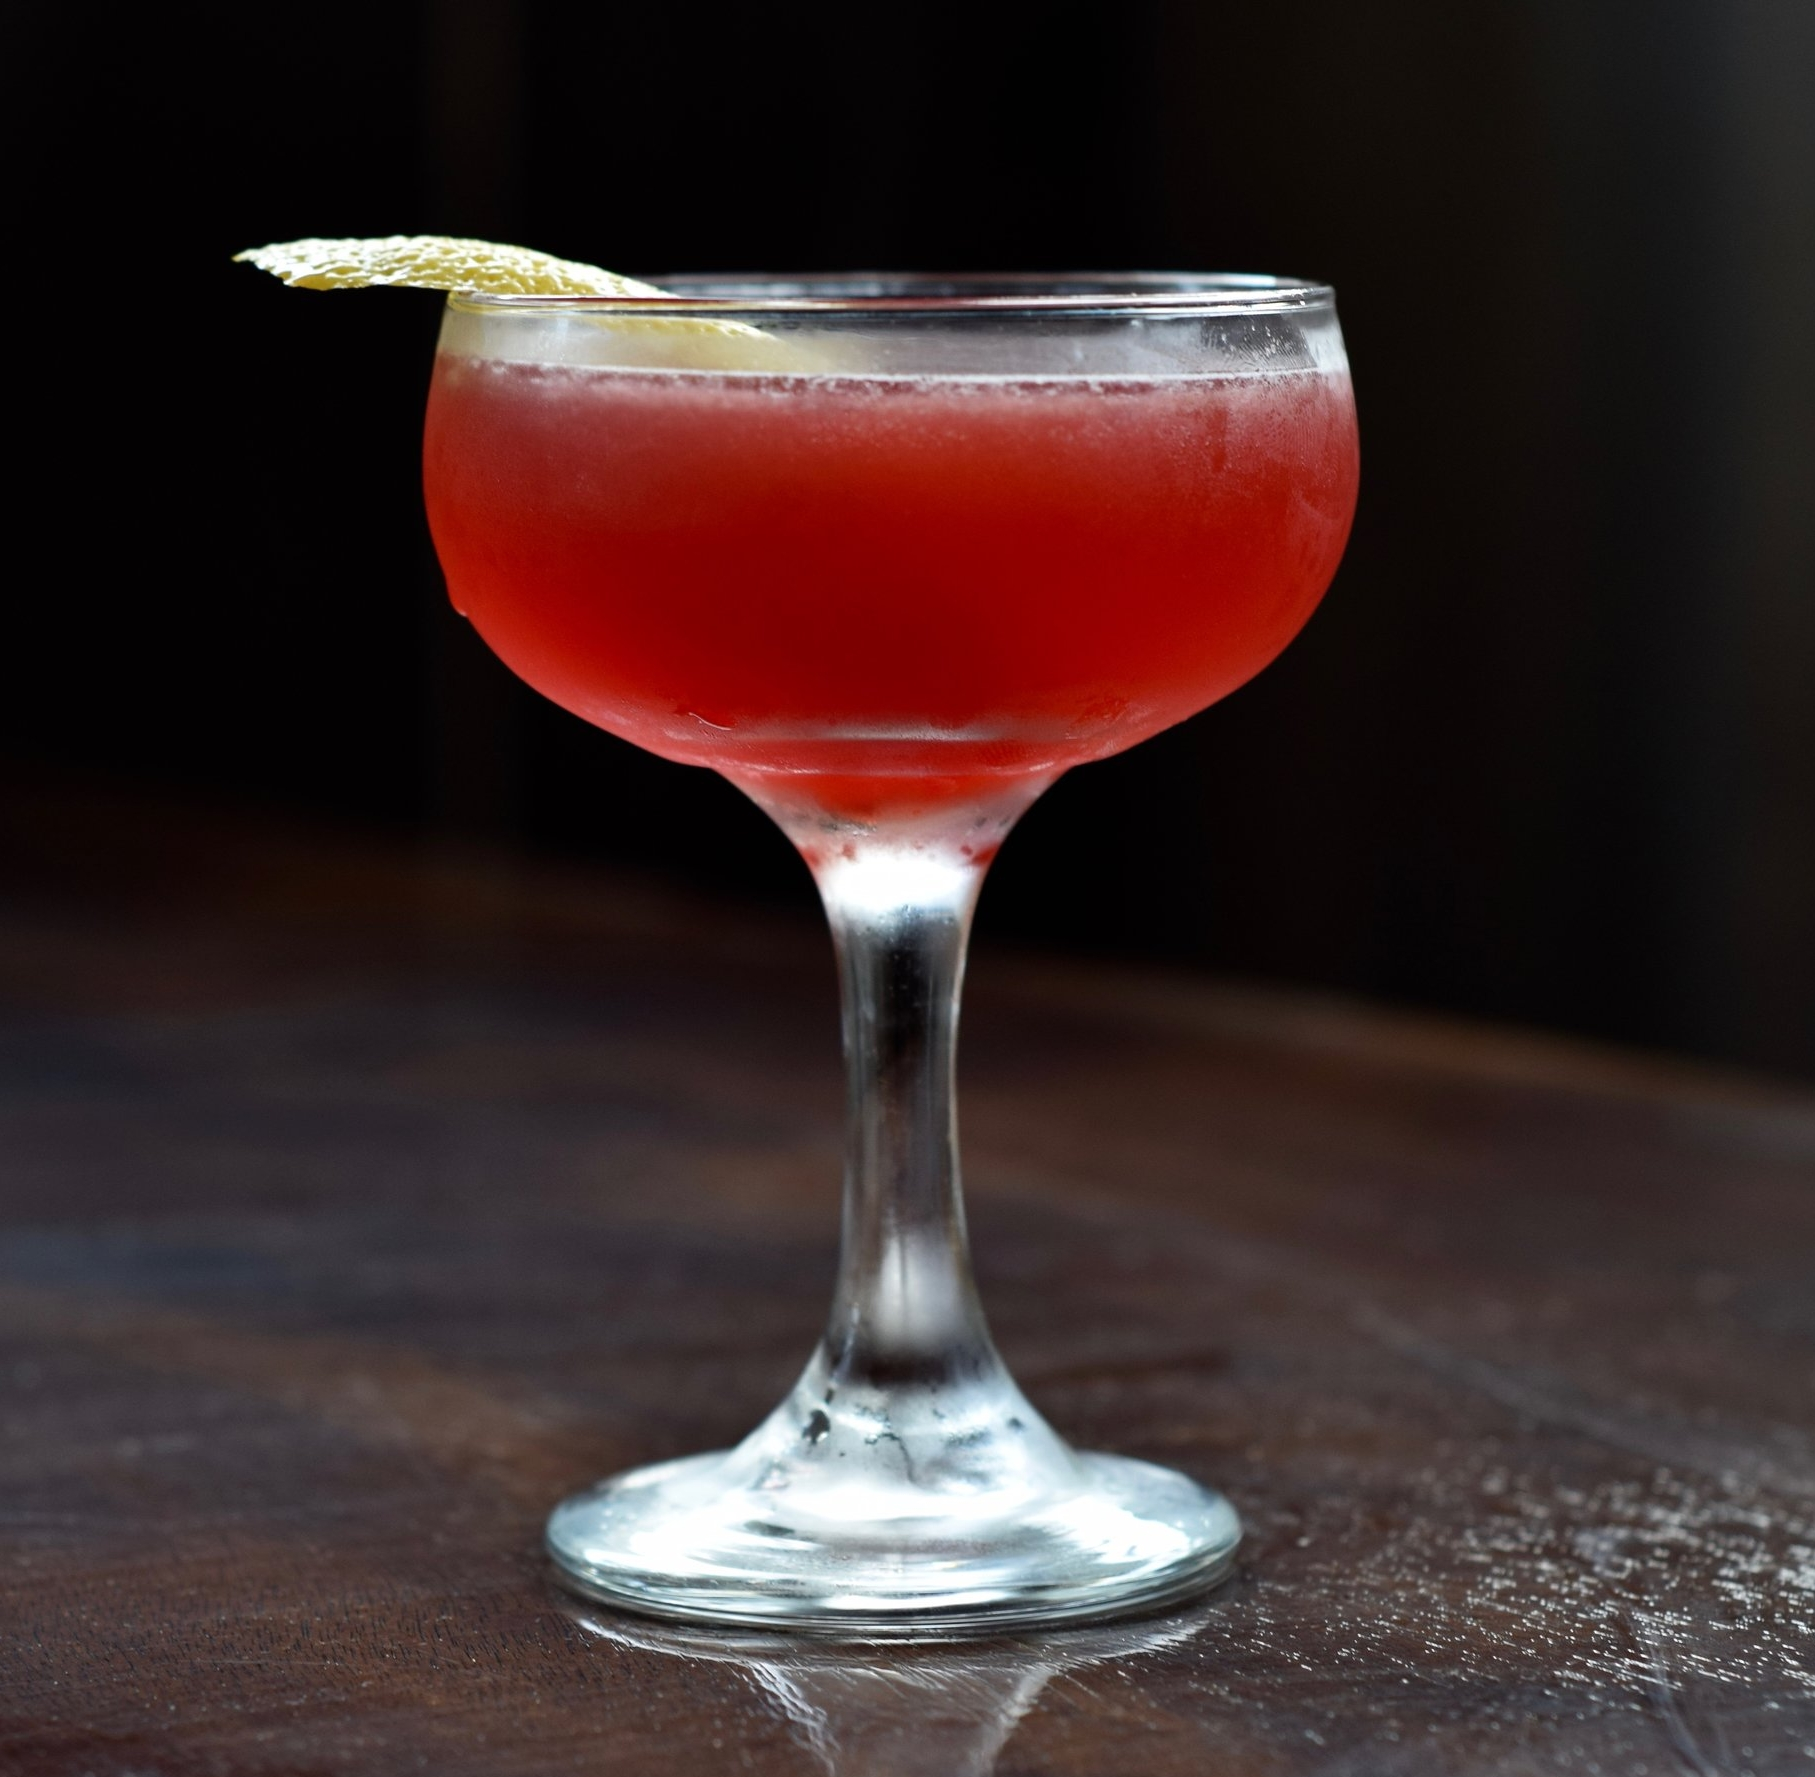 LADY IN RED - 1.5 oz tequila or mezcal1/2 oz aperol3/4 oz nostrum strawberry hibiscus jalapeno shrub3/4 oz fresh lime juiceShake with ice and strain.